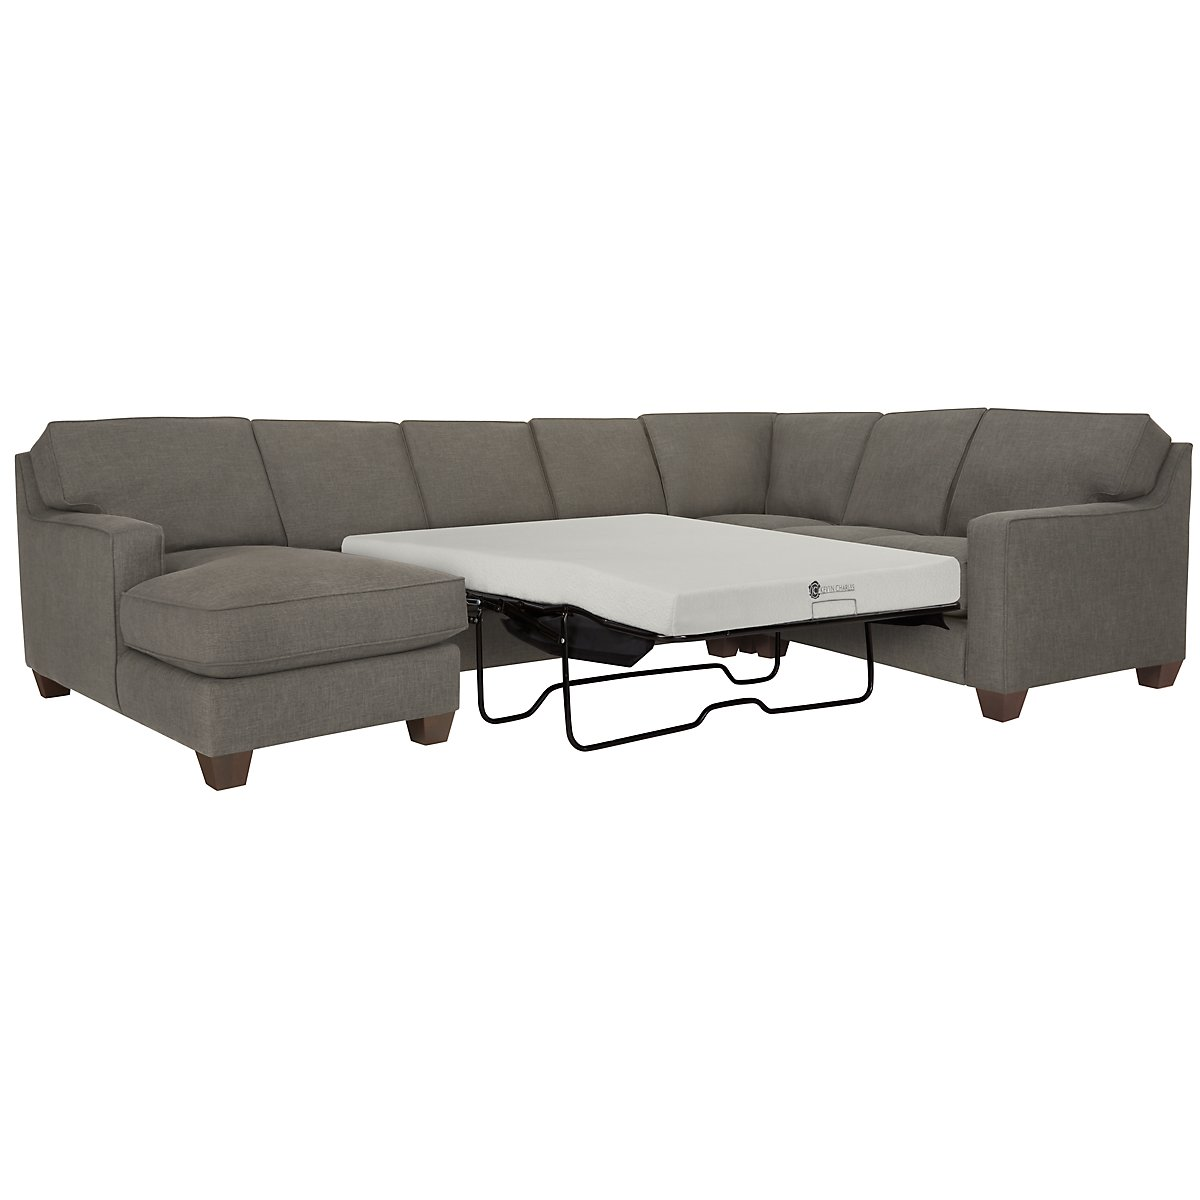 York Dark Gray Fabric Left Chaise Memory Foam Sleeper Sectional